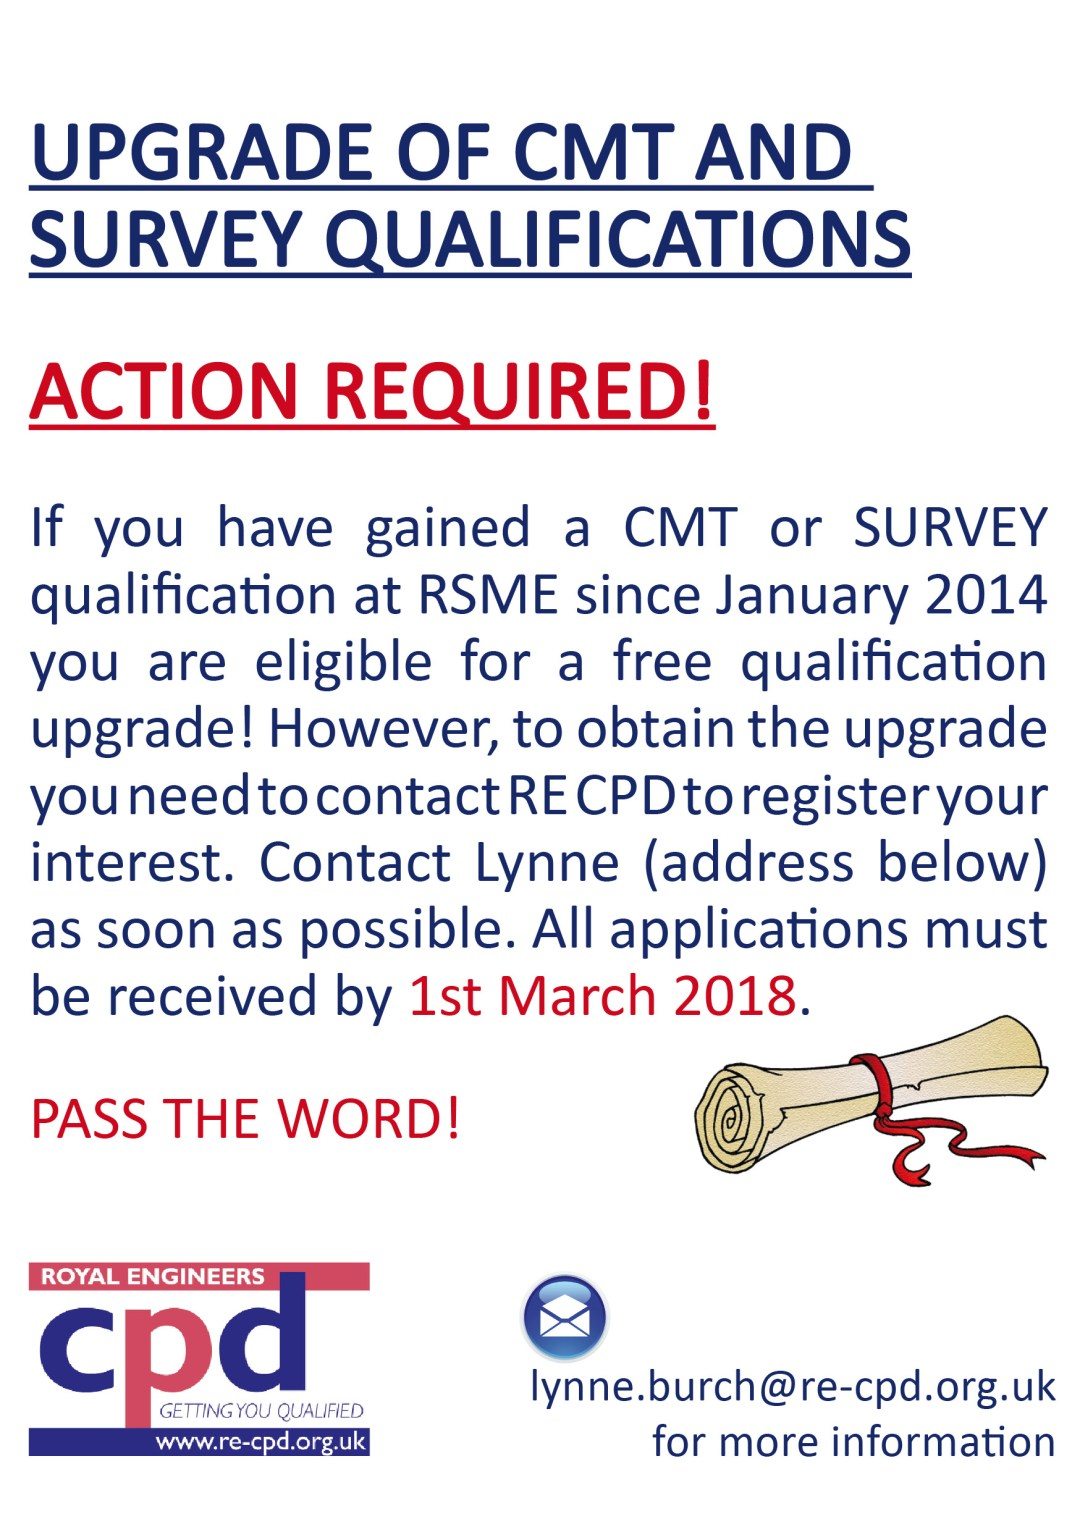 CMT/SURVEY ACTION REQUIRED!